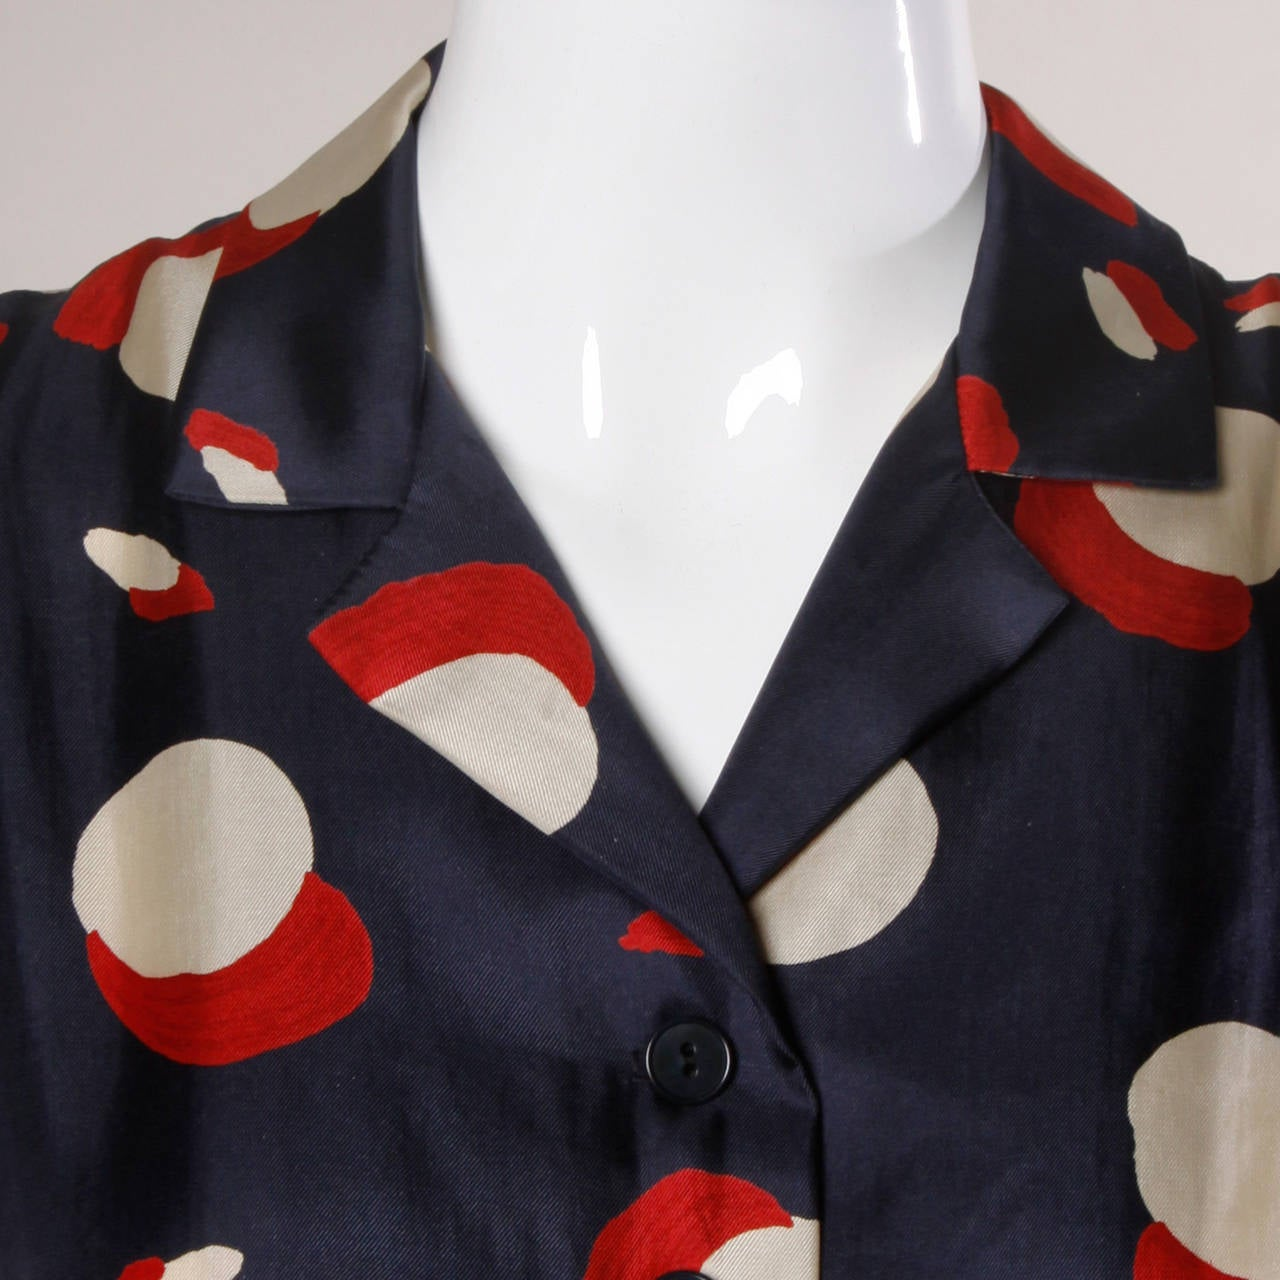 1950s New Look Vintage Polka Dot Print Silk Dress with a Full Sweep 6